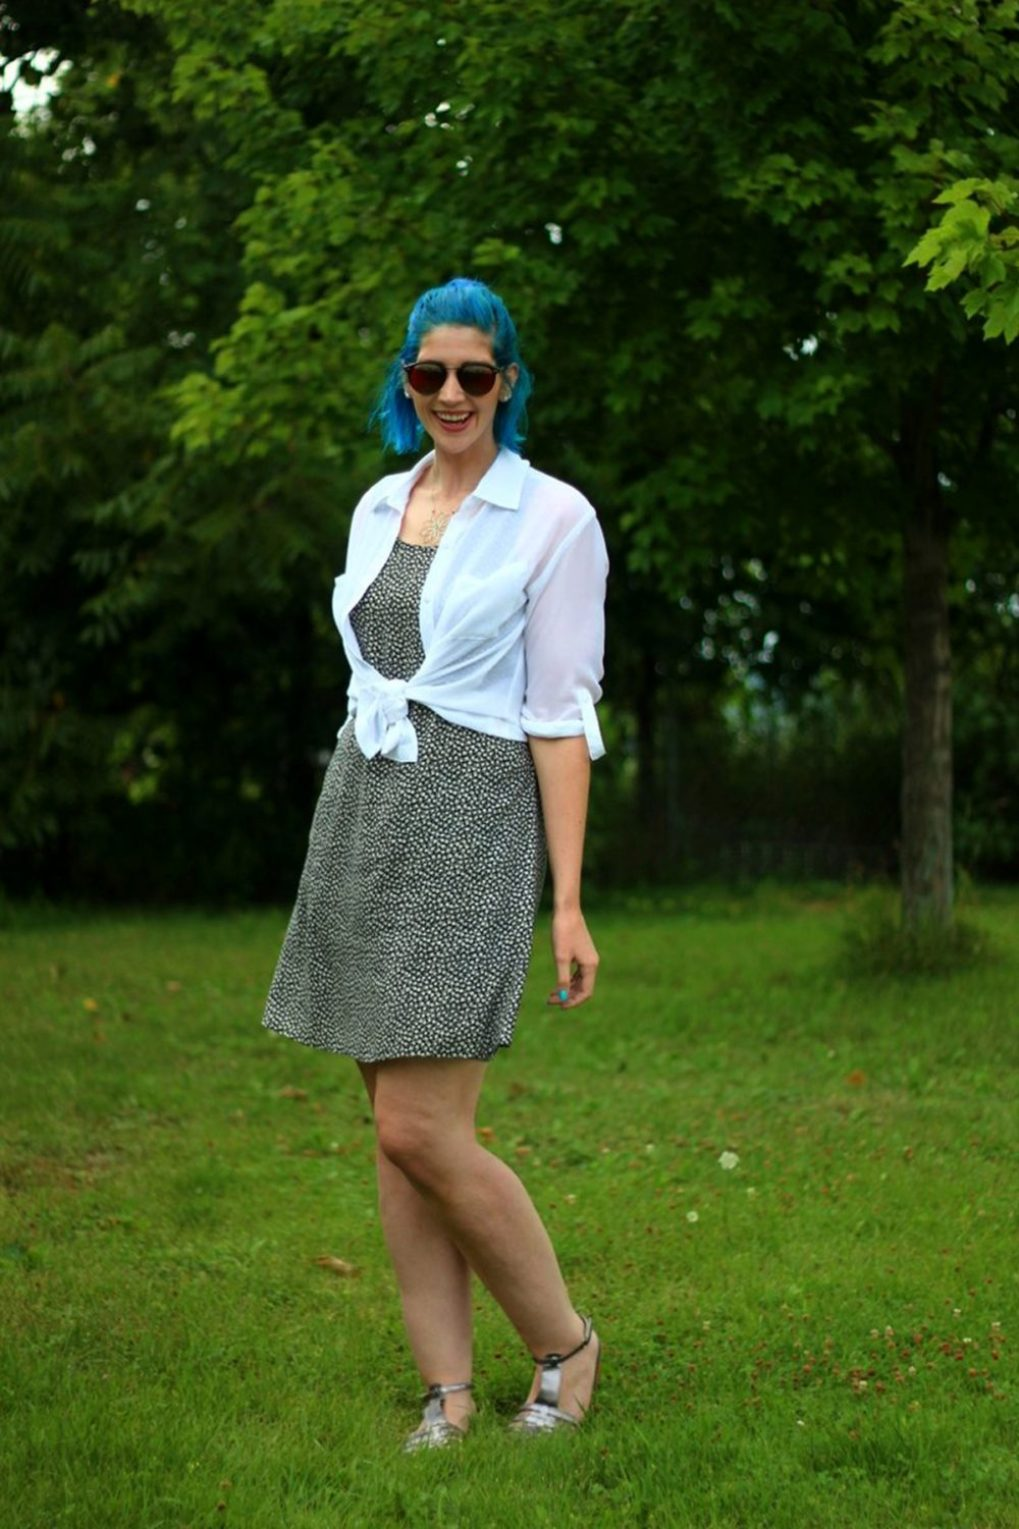 floral-dress-90s-blue-hair-outfit-06